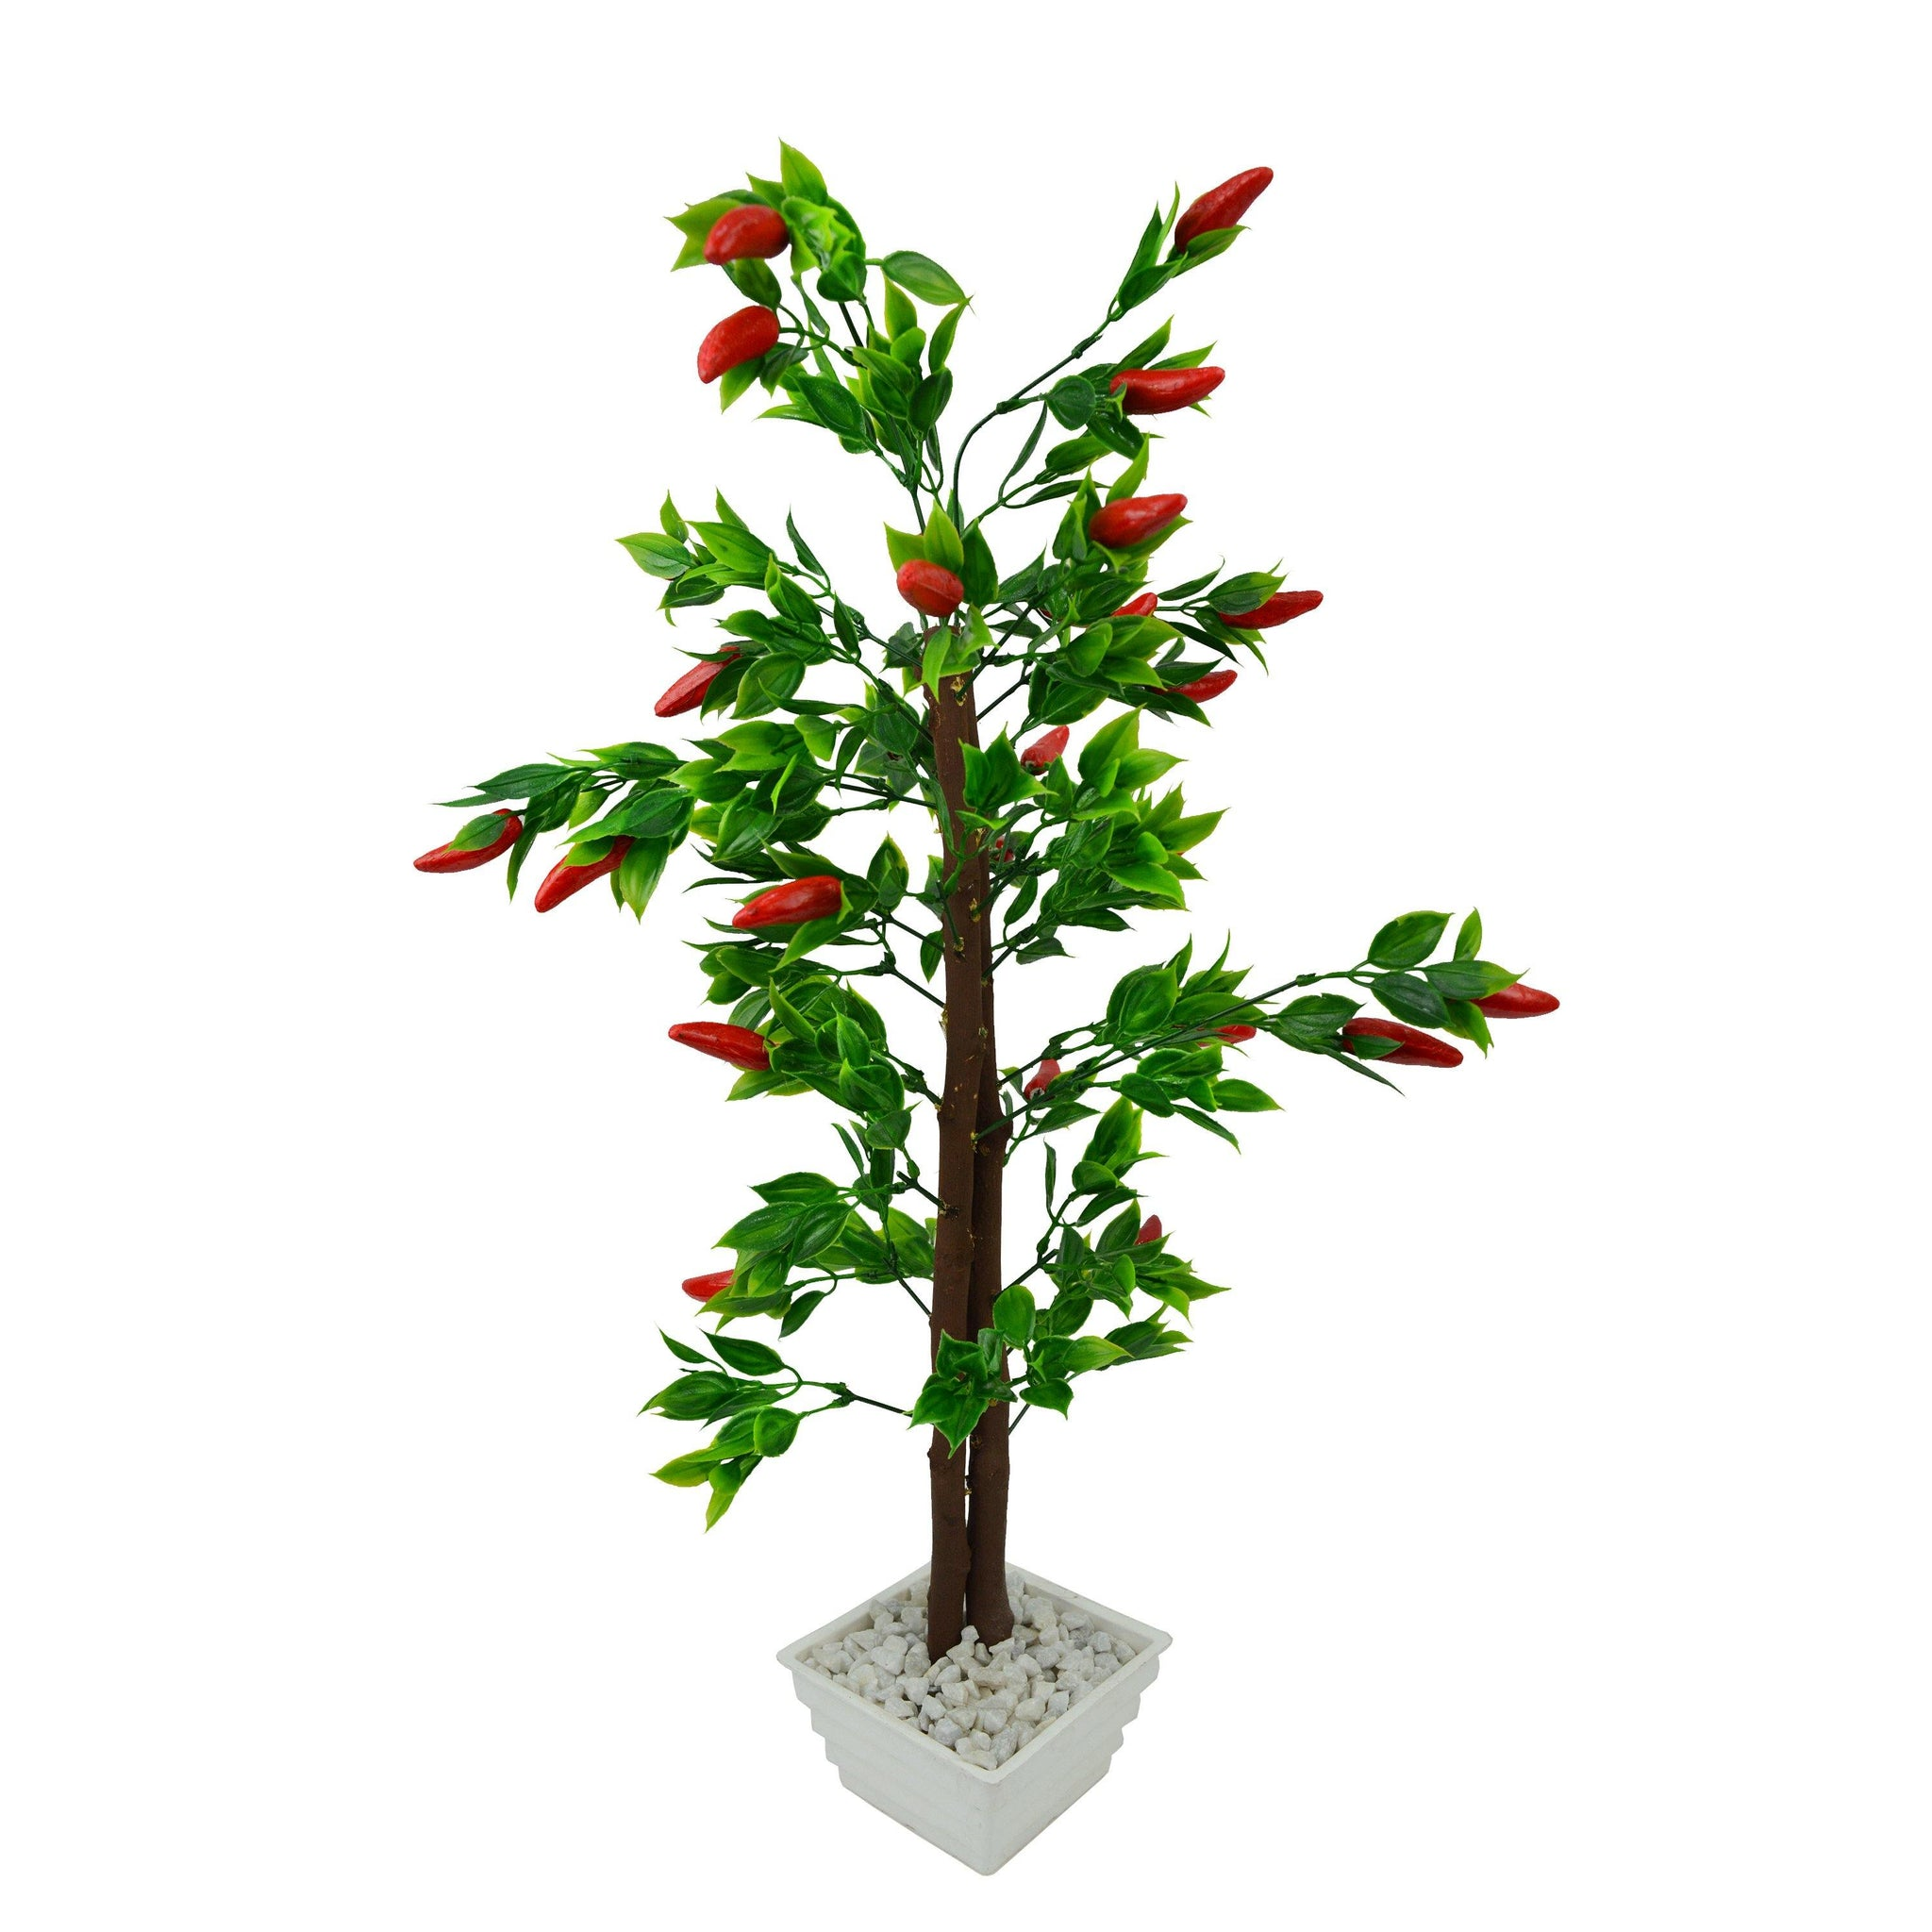 Artificial Red Chillies Bonsai Tree with White Square pot